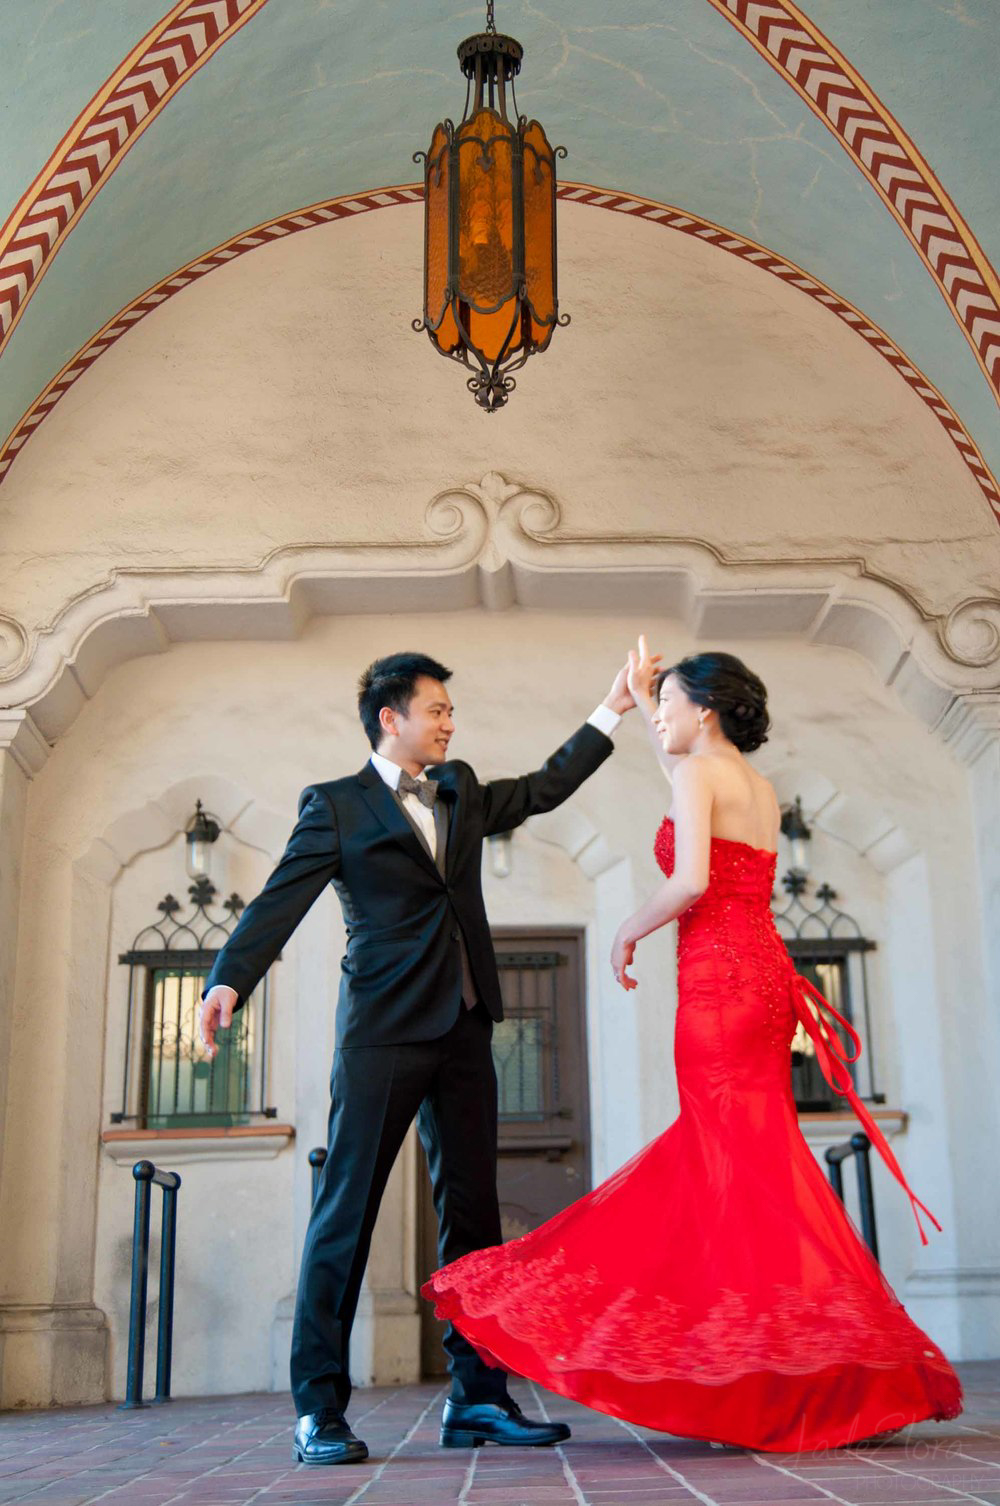 Red Dress Dancing Bride and Groom